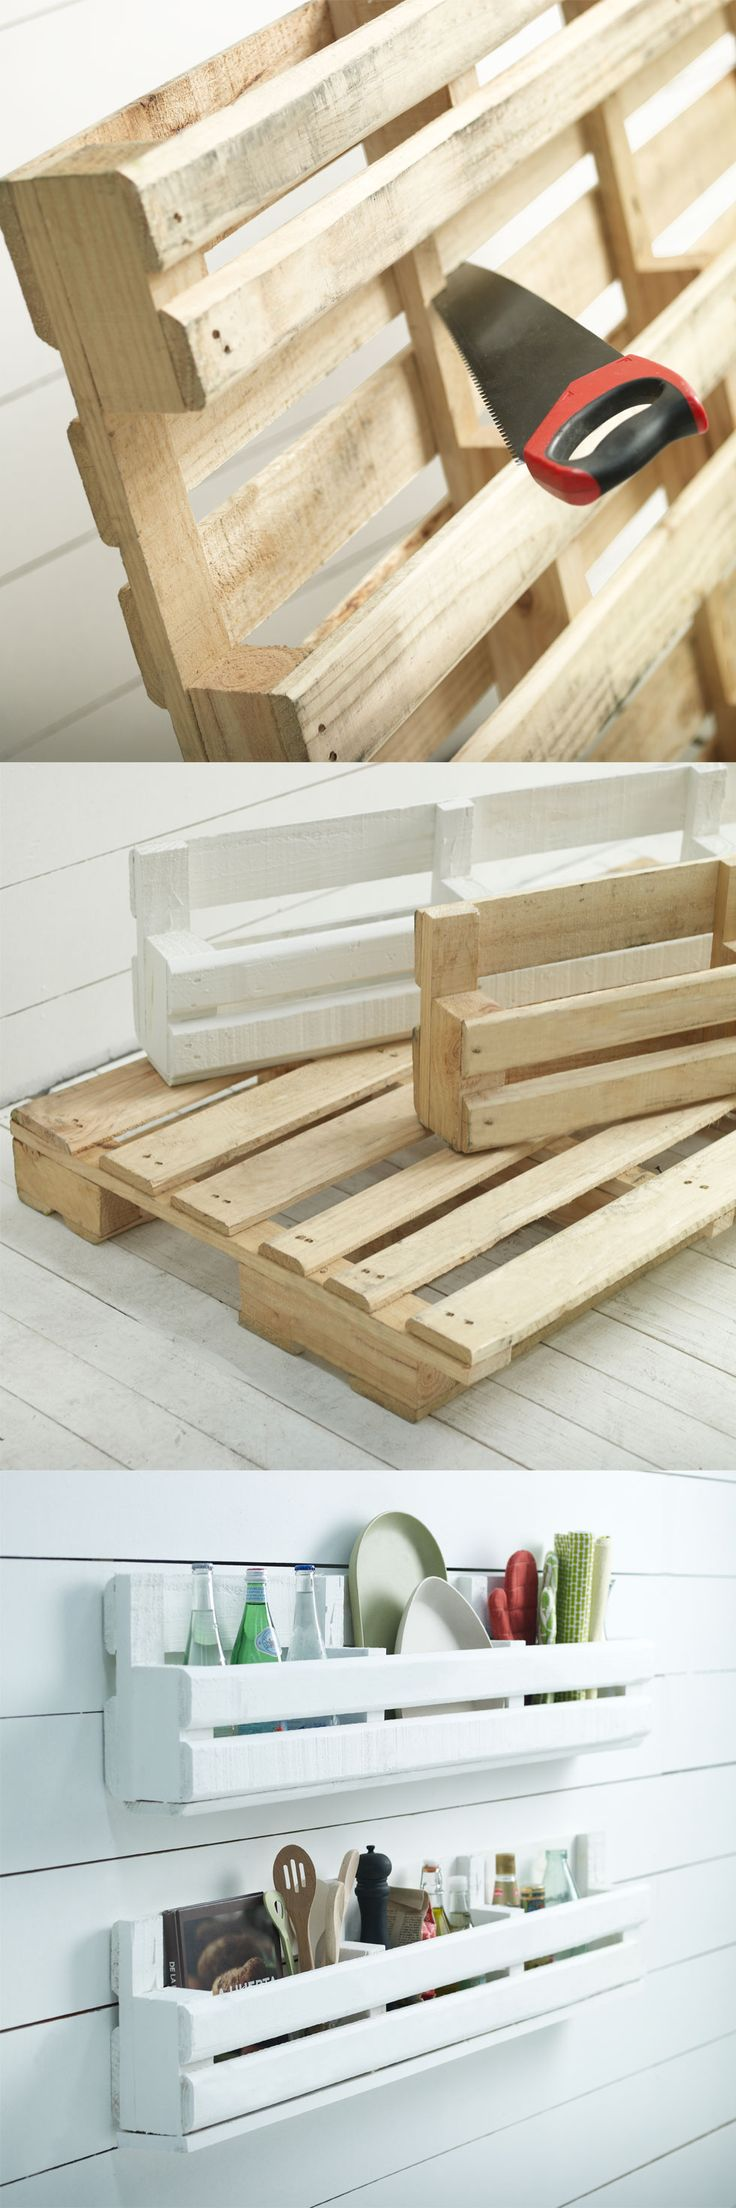 Great idea for storage and organization without taking up too much space.